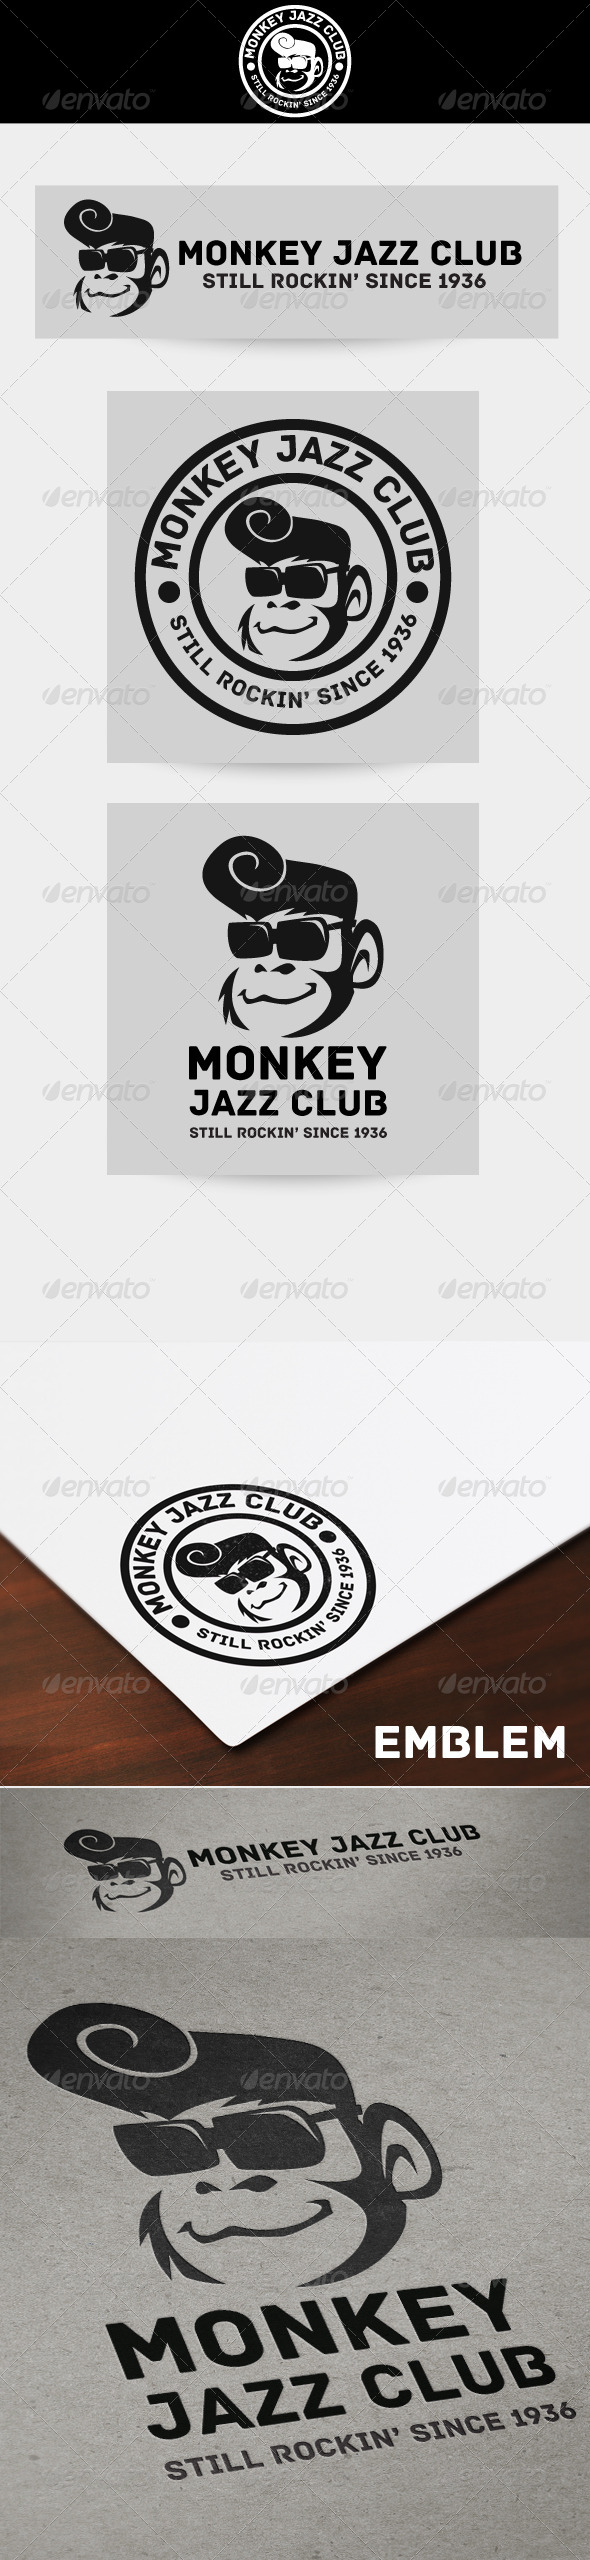 Monkey Jazz Club (Emblem, Vertical, Horizontal) Logo - Animals Logo Templates